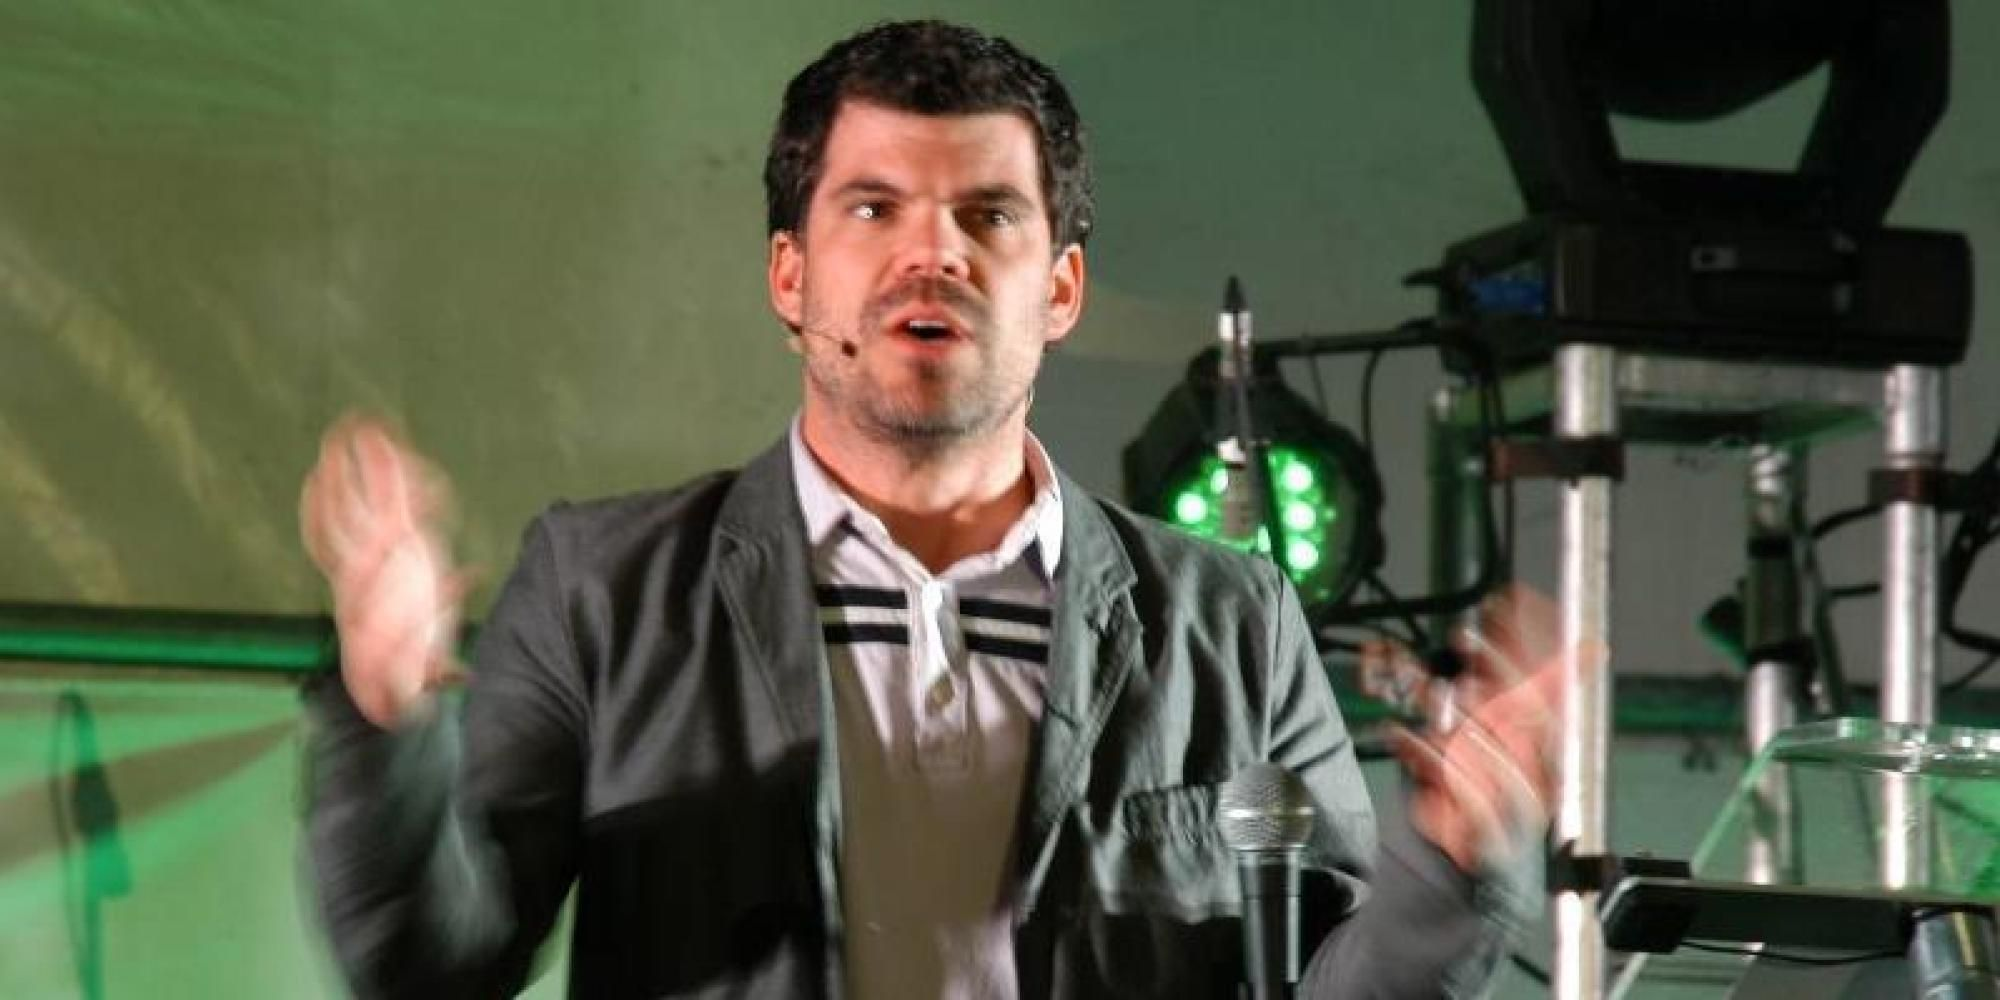 Atheist Funding Page For Fired Pastor Goes Really Viral